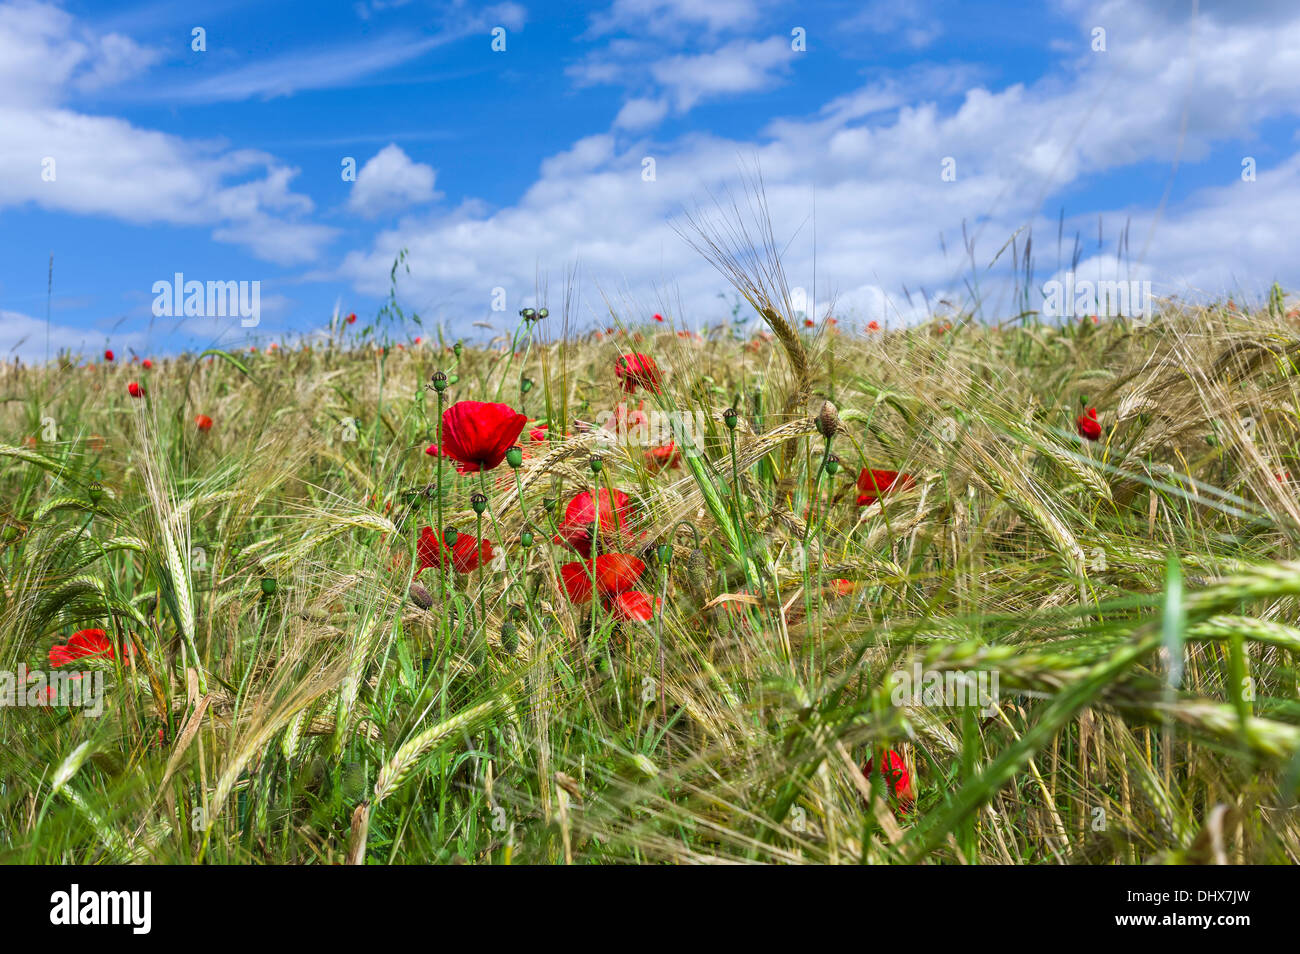 Bright red poppies in a field of wheat almost ready for harvesting on a bright summer's day near Malton in north Yorkshire, UK. - Stock Image